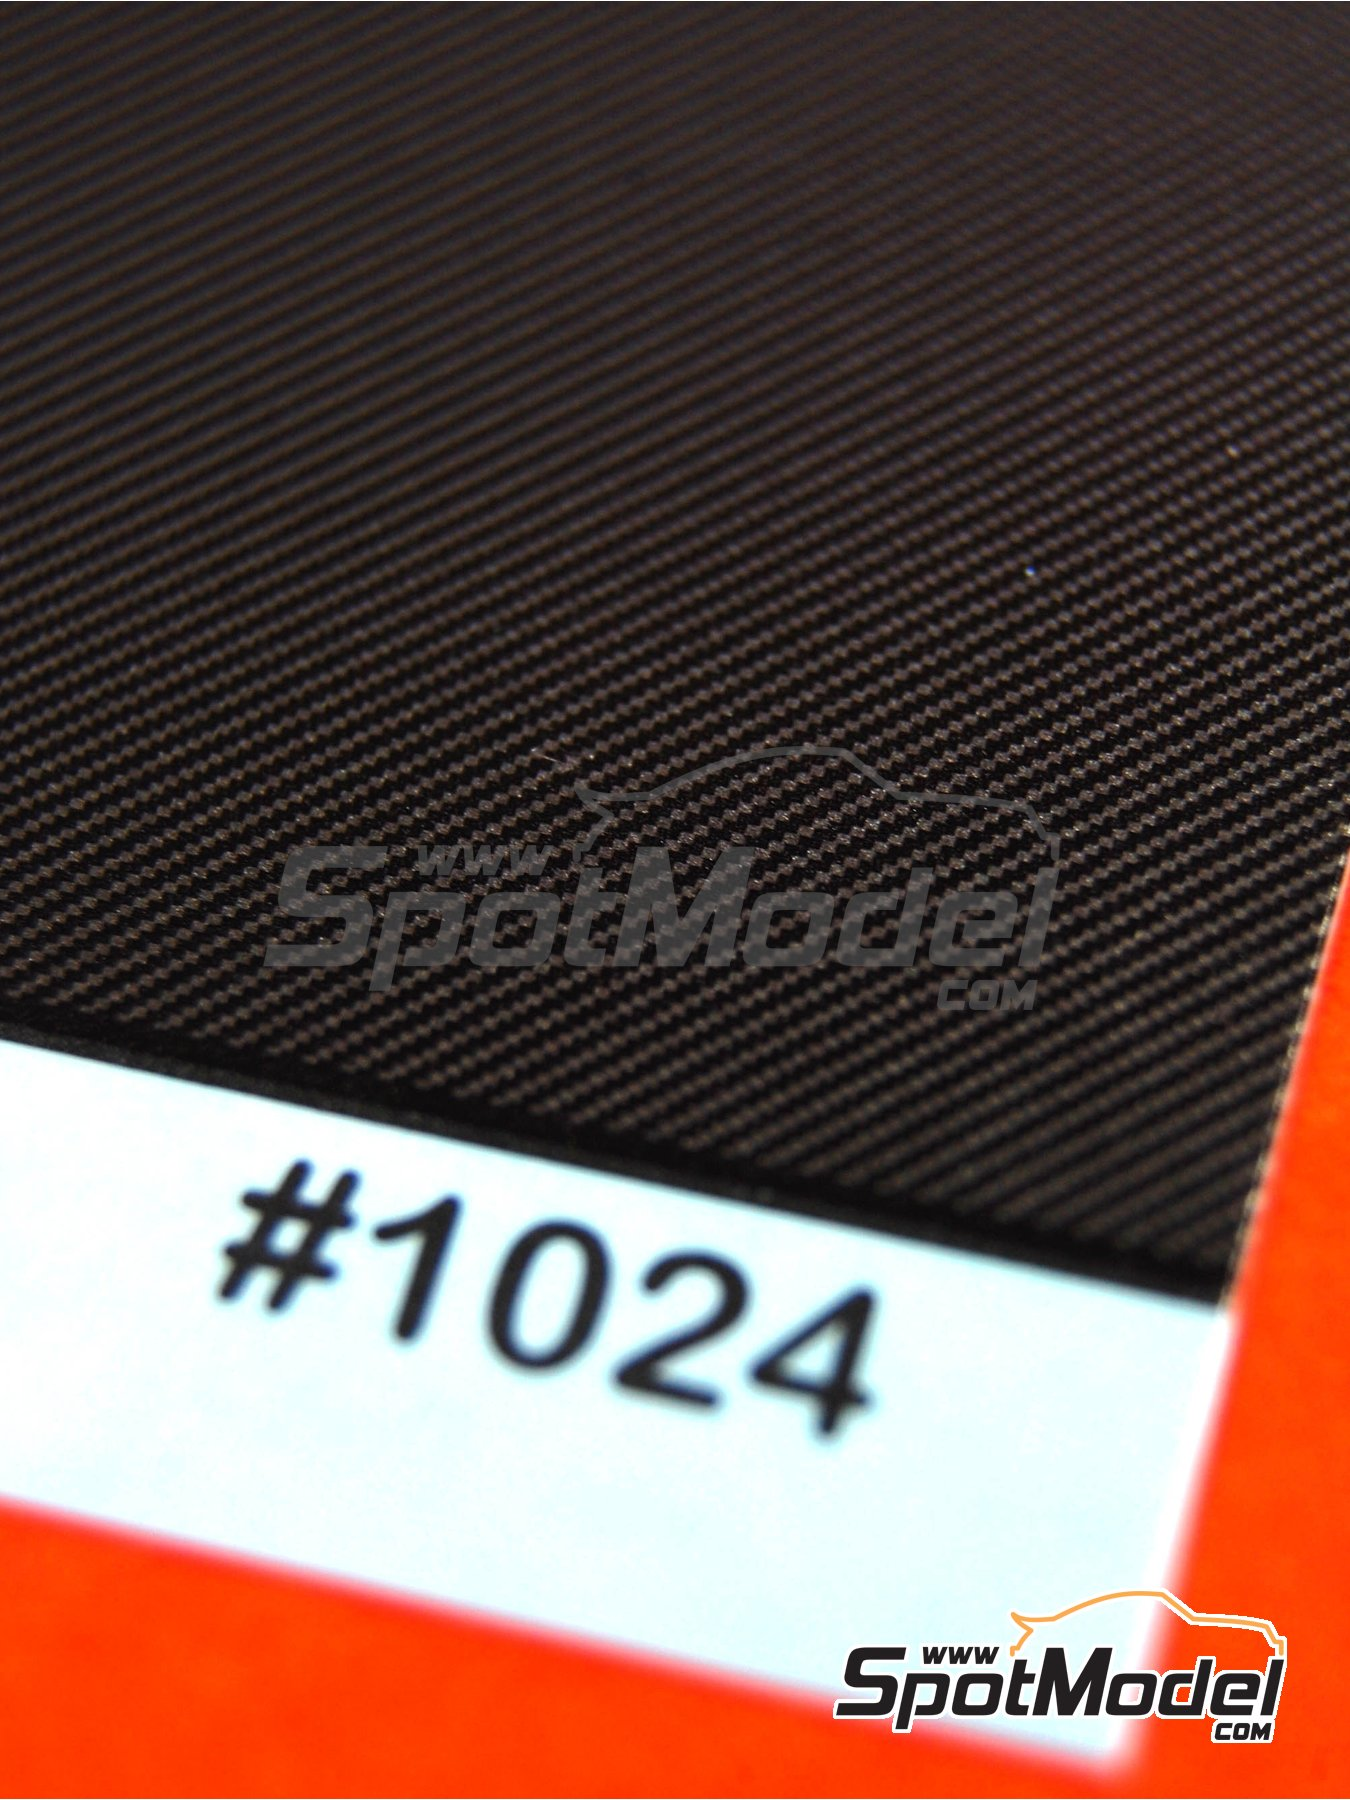 Carbon fiber twill weave black on pewter medium size pattern | Decals in 1/24 scale manufactured by Scale Motorsport (ref. SM1024) image